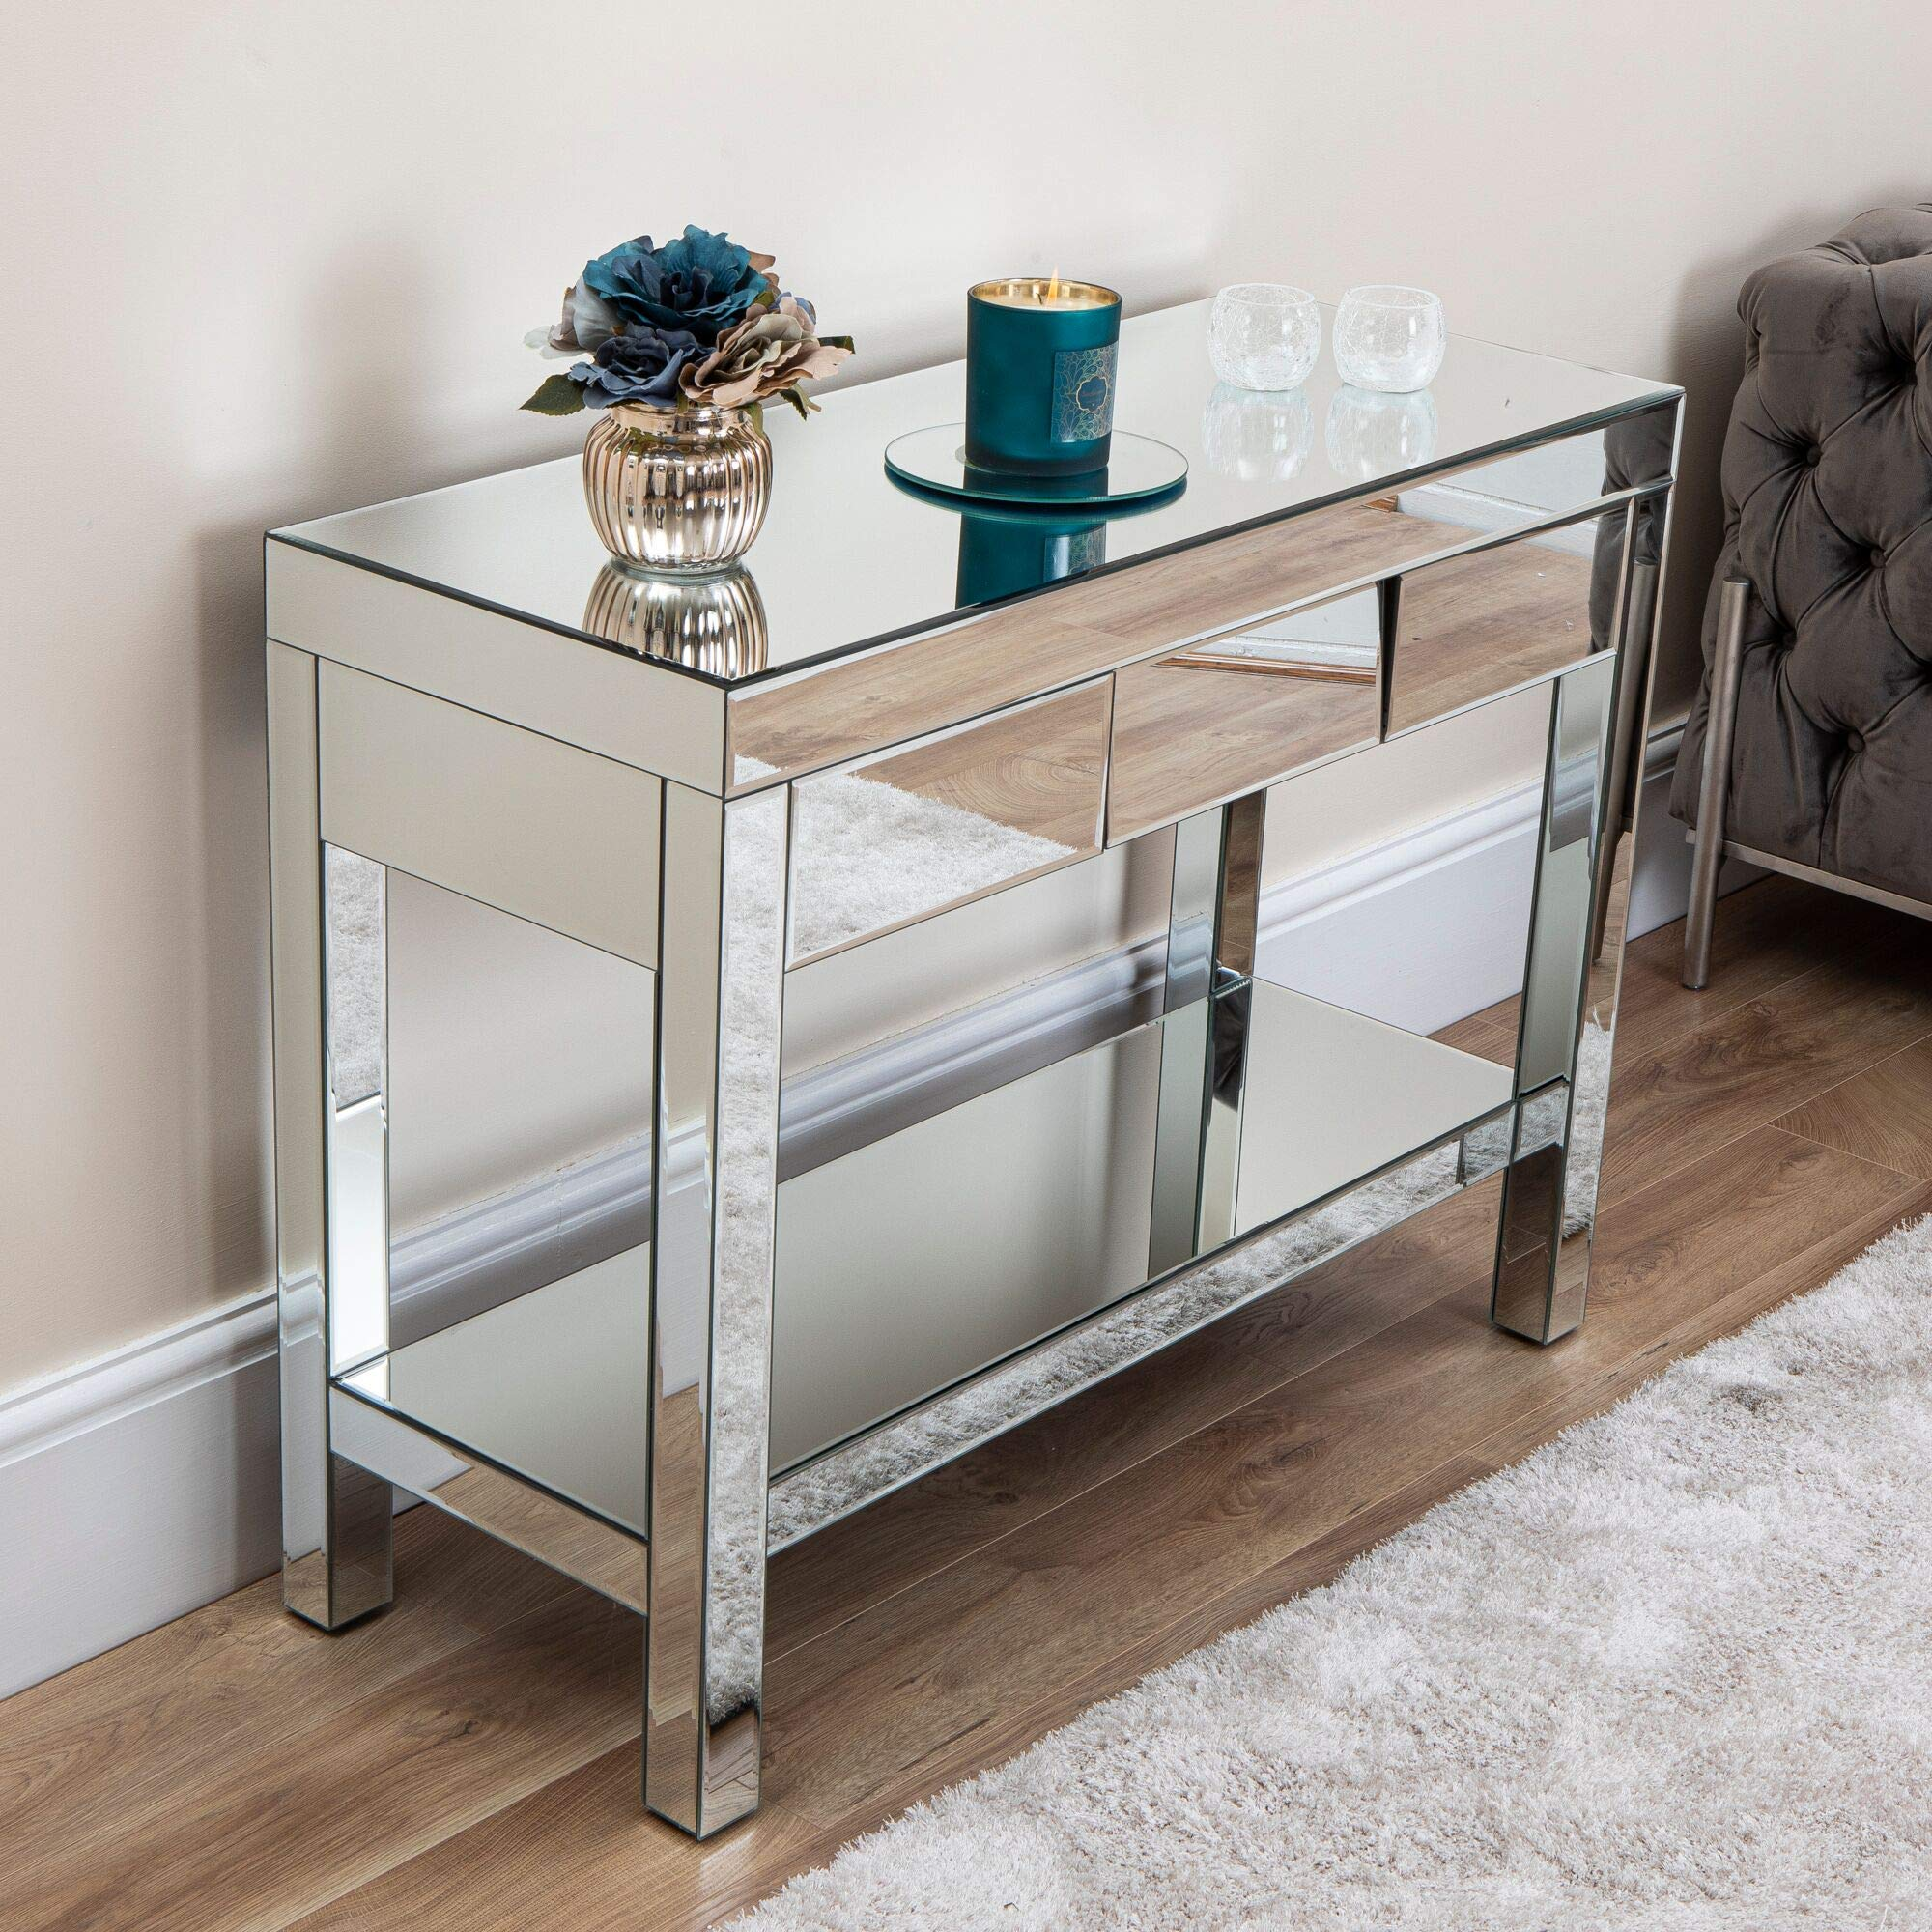 Mirrored Furniture Console Coffee Table Corner Unit Mirror Angled Drawers  for Living Room Dining Bedroom Hallway (Mirrored Angled 12 Drawer Console